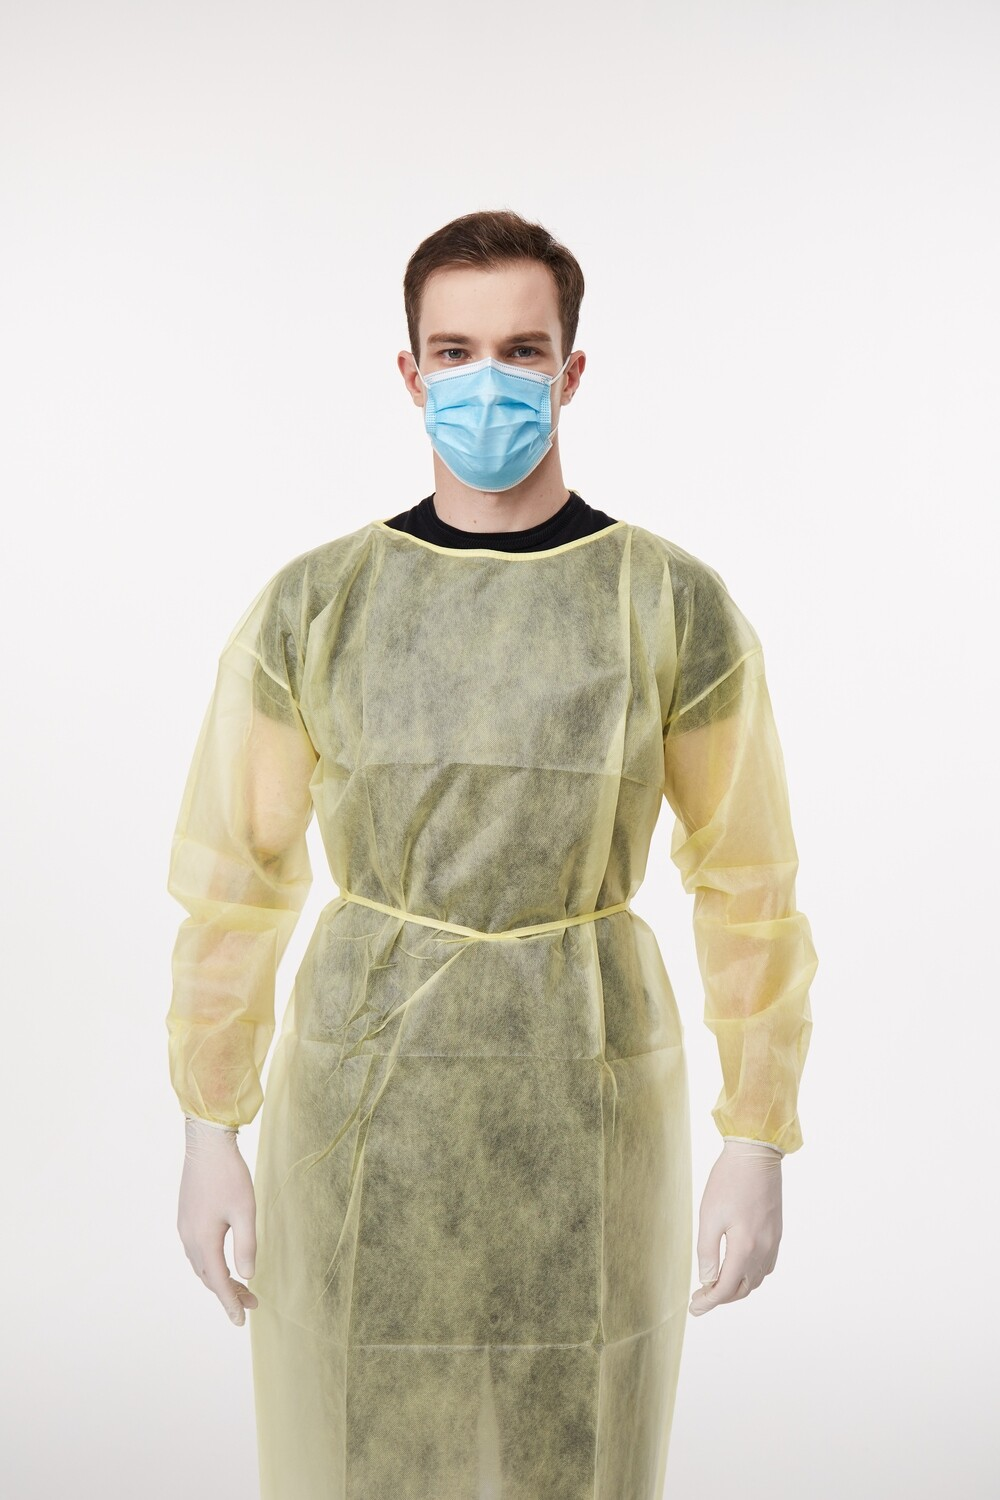 Disposable Isolation Gown PP+ABS - 100 gown case